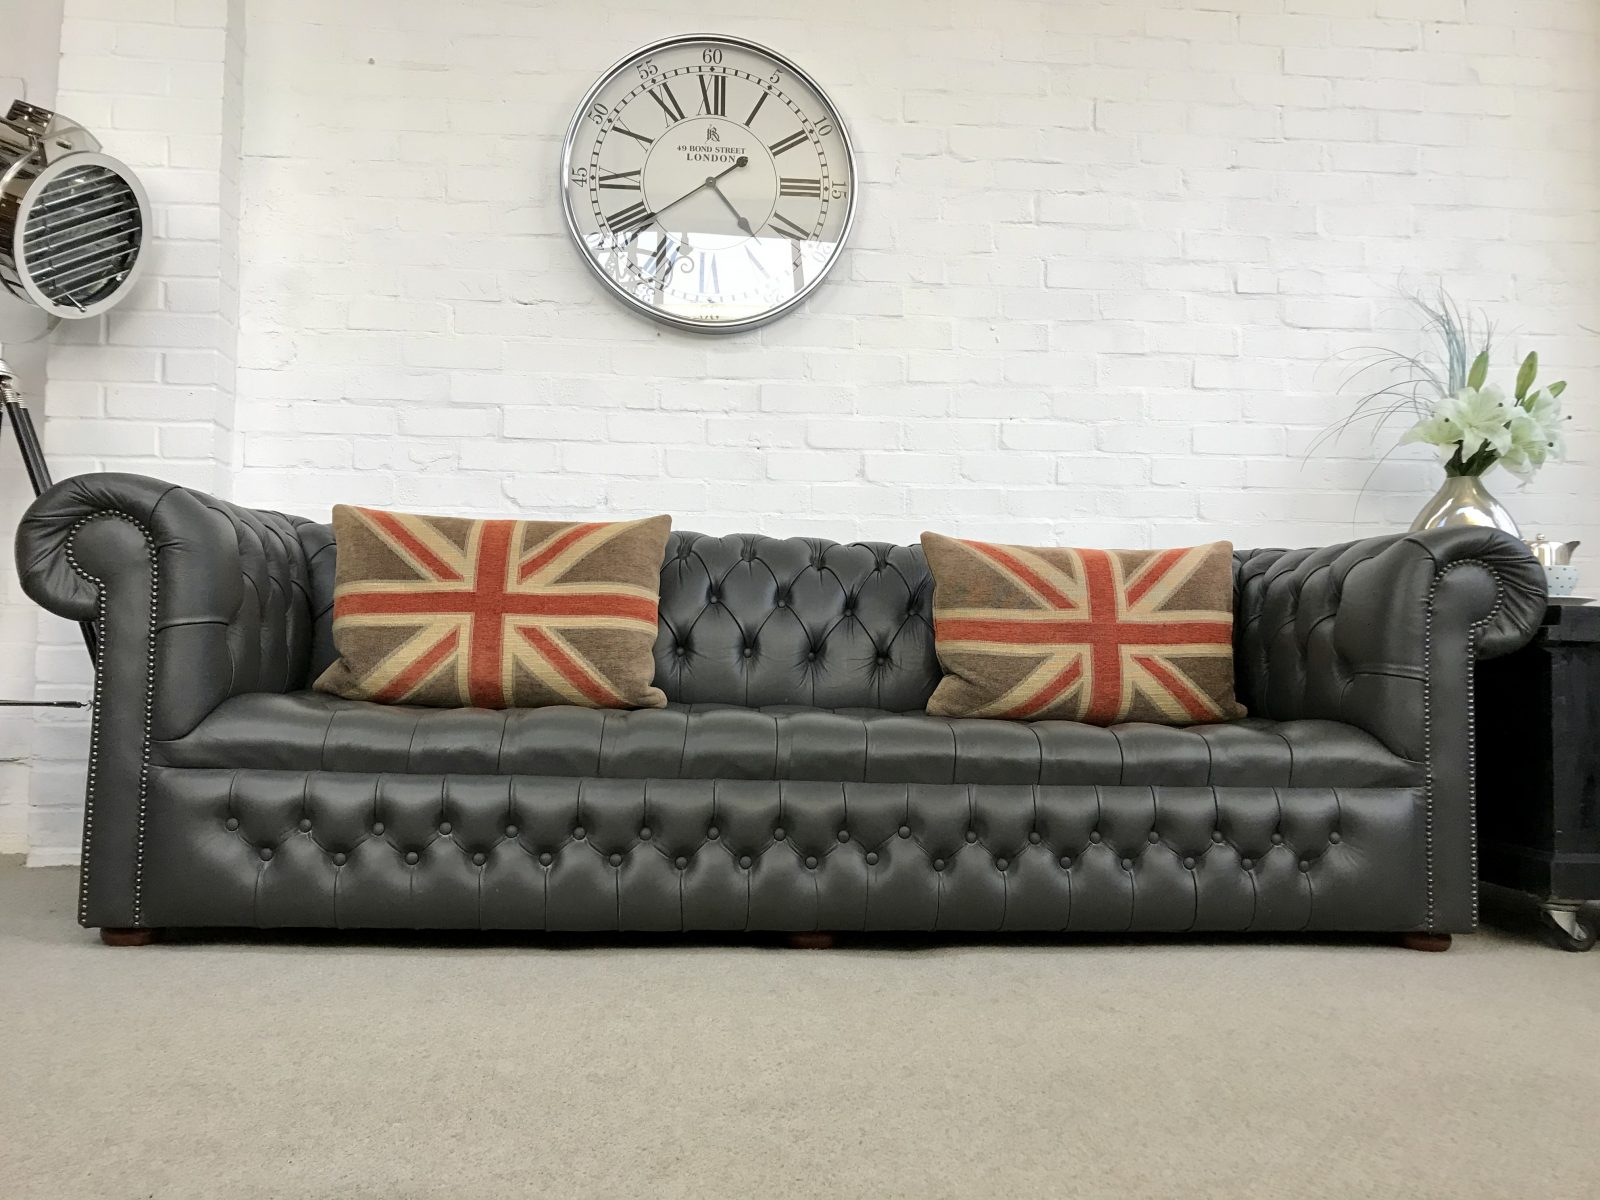 Steel Grey 4 Seater Chesterfield Sofa.